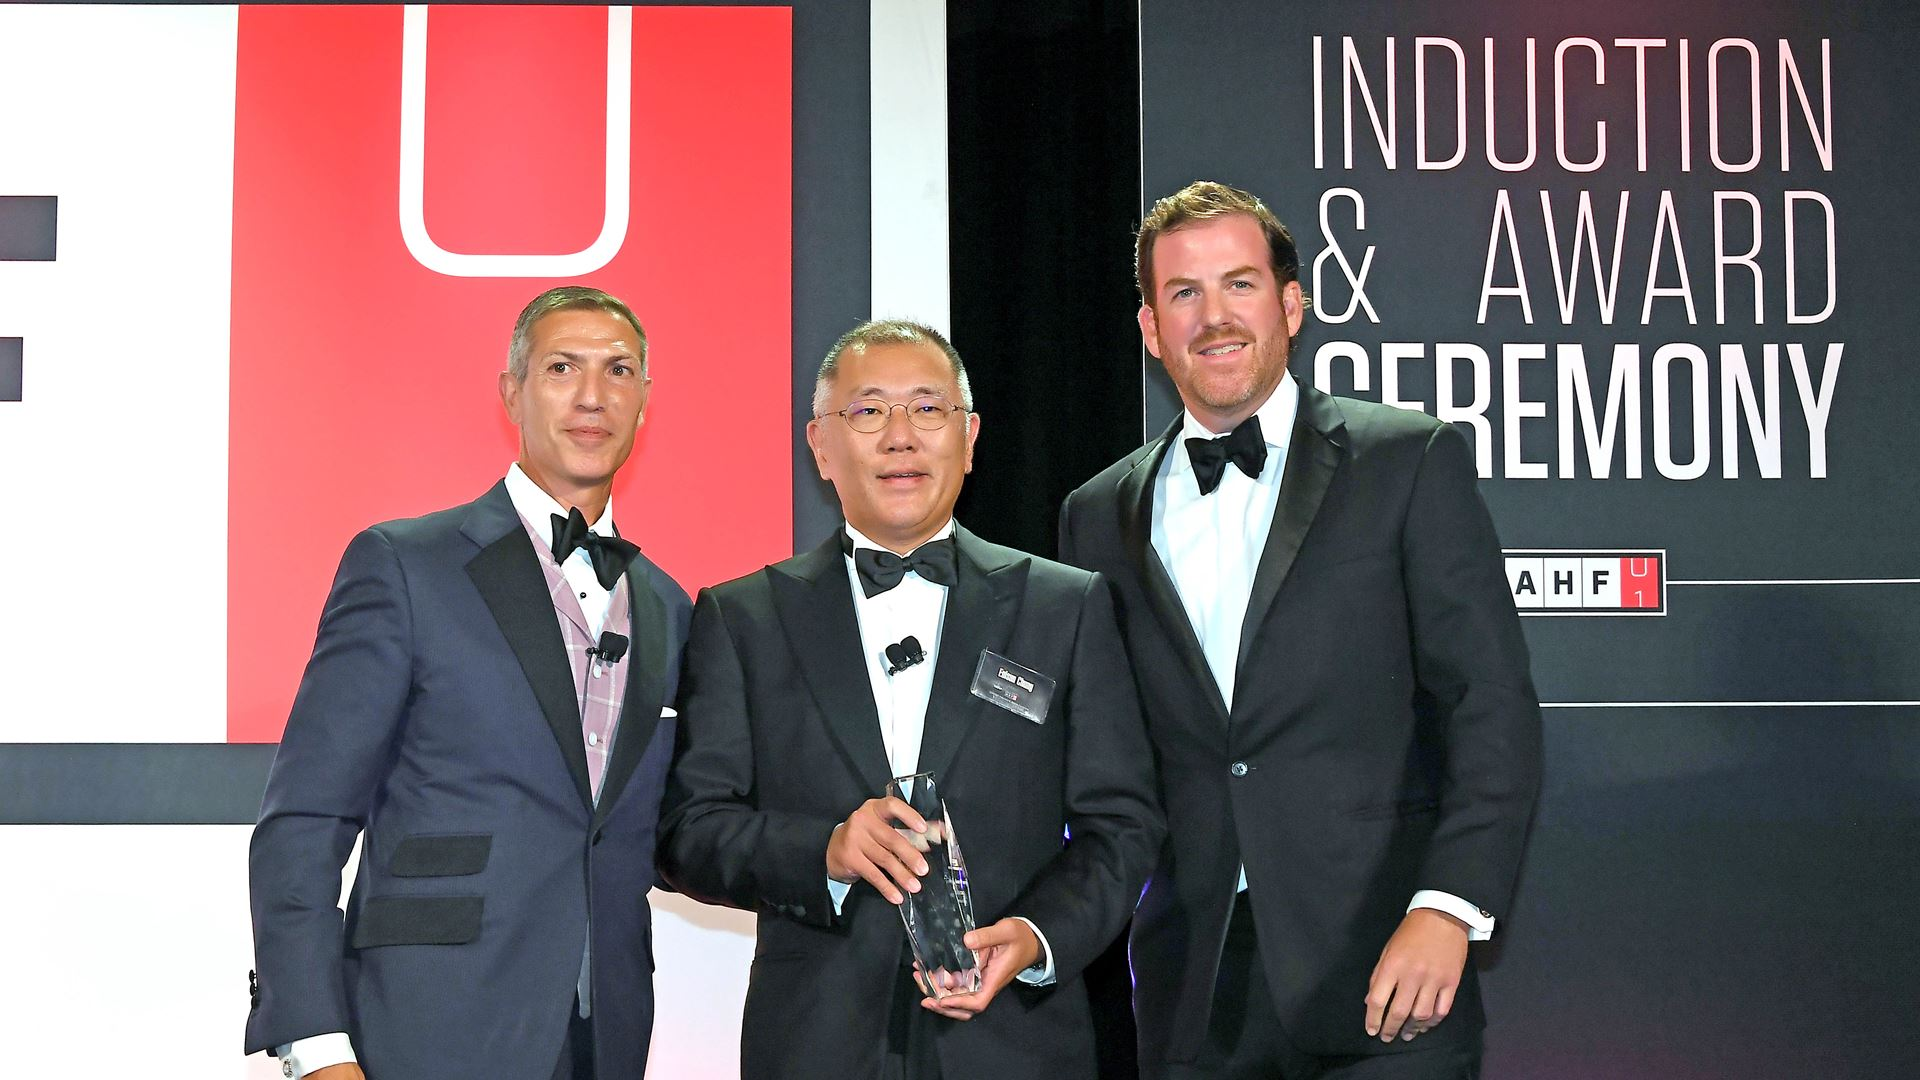 Hyundai Motor Group Honorary Chairman Mong-Koo Chung Inducted Into Automotive Hall of Fame at Official Ceremony - Image 3